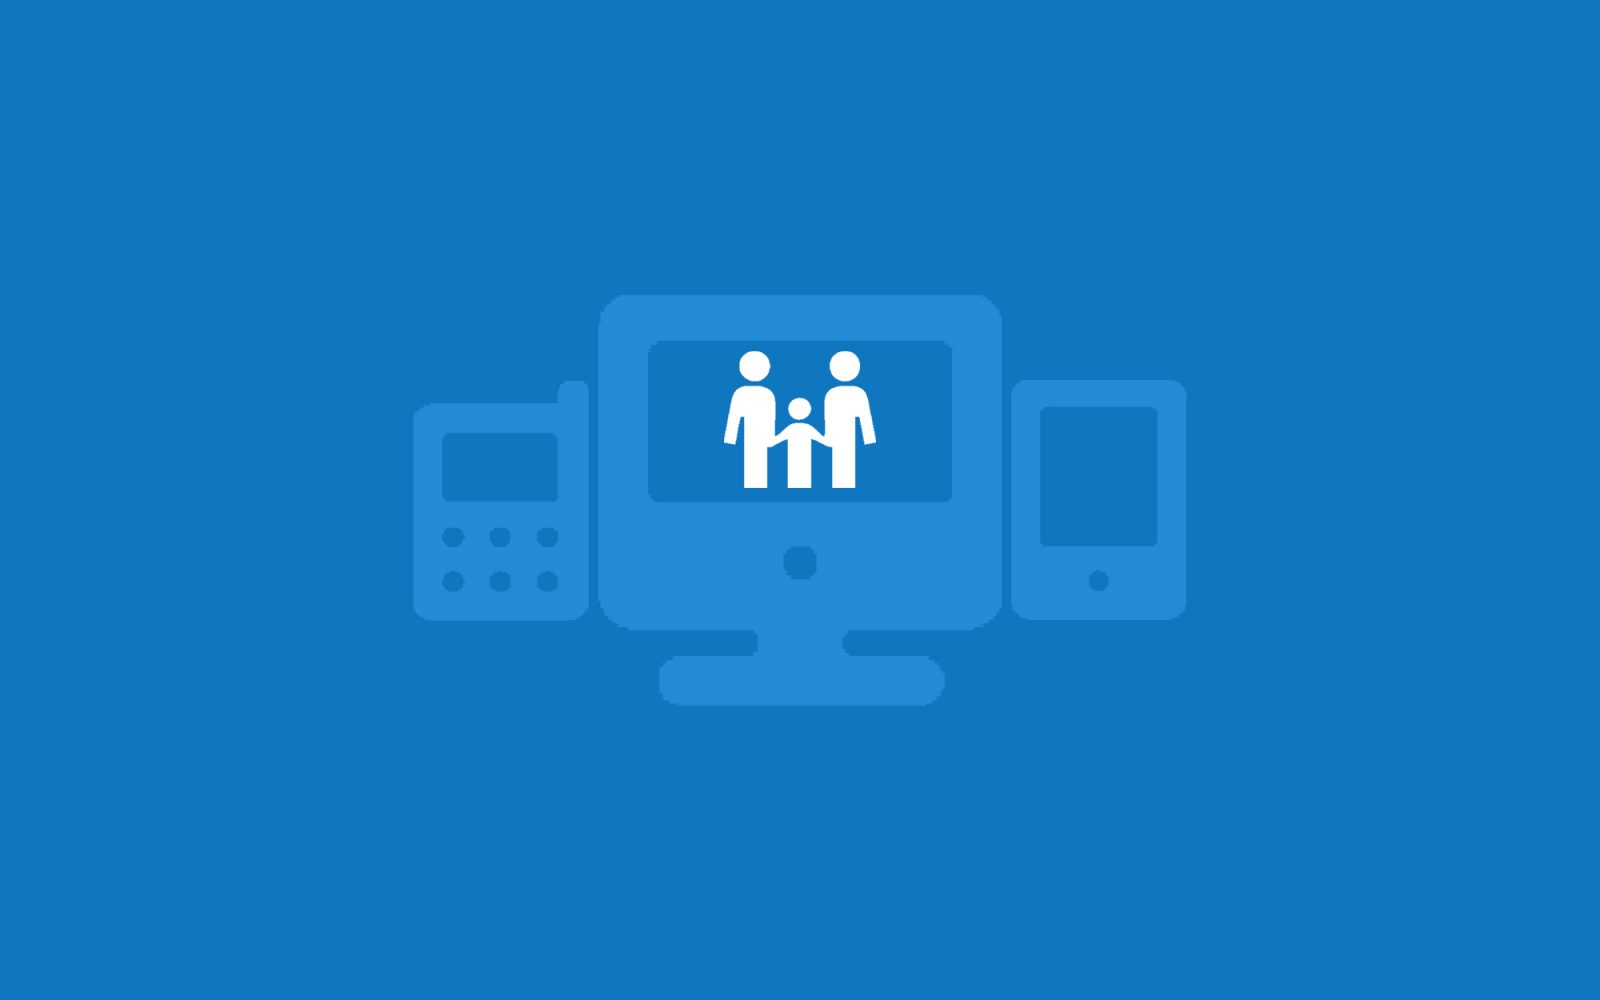 Online safety. Mobile, computer and tablet icons with family icon in the middle on blue background.